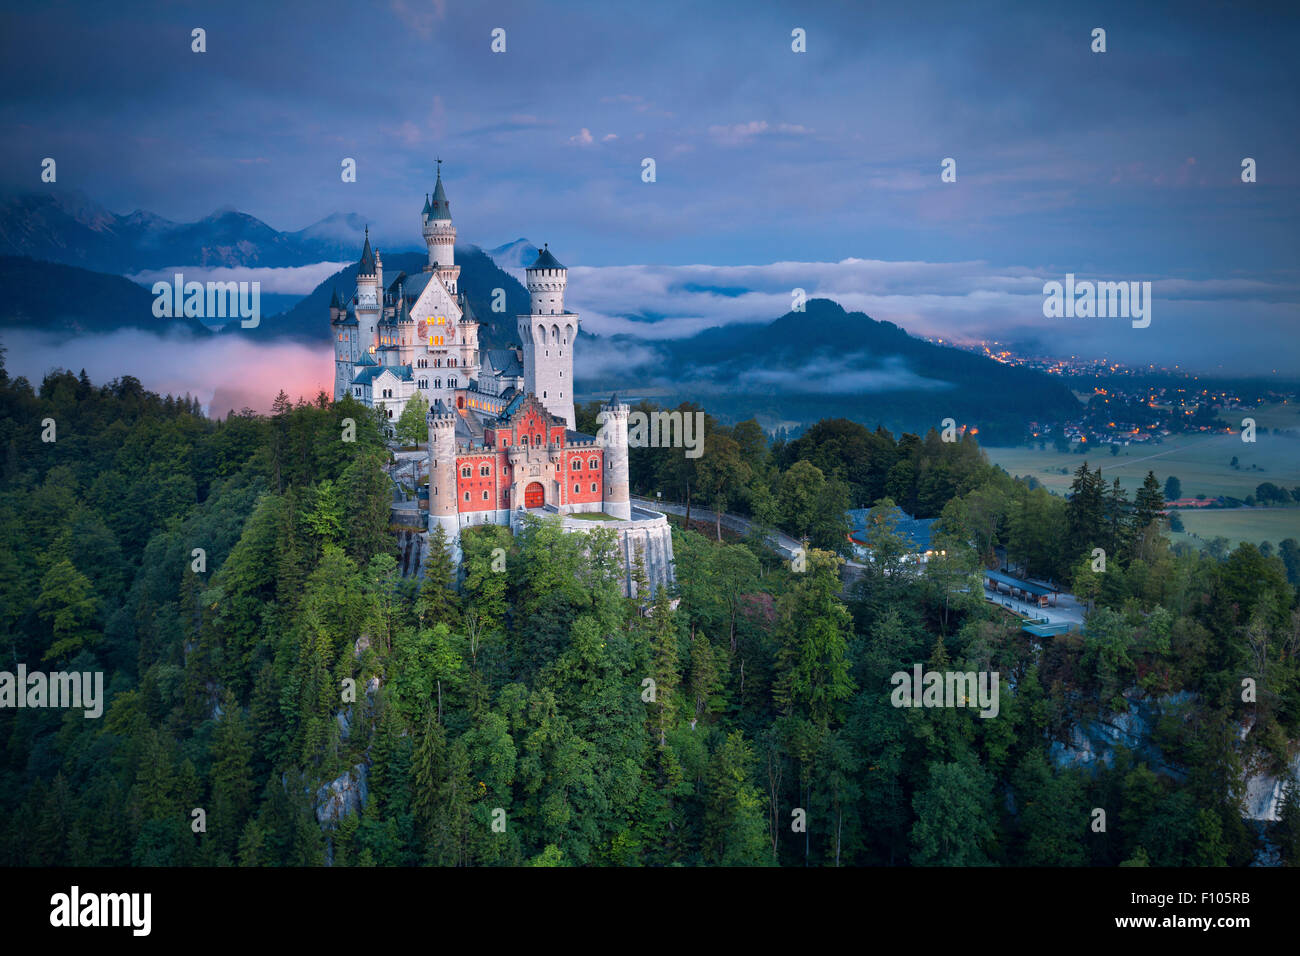 Neuschwanstein Castle, Germany. Revival palace on a rugged hill above the village of Hohenschwangau in southwest - Stock Image